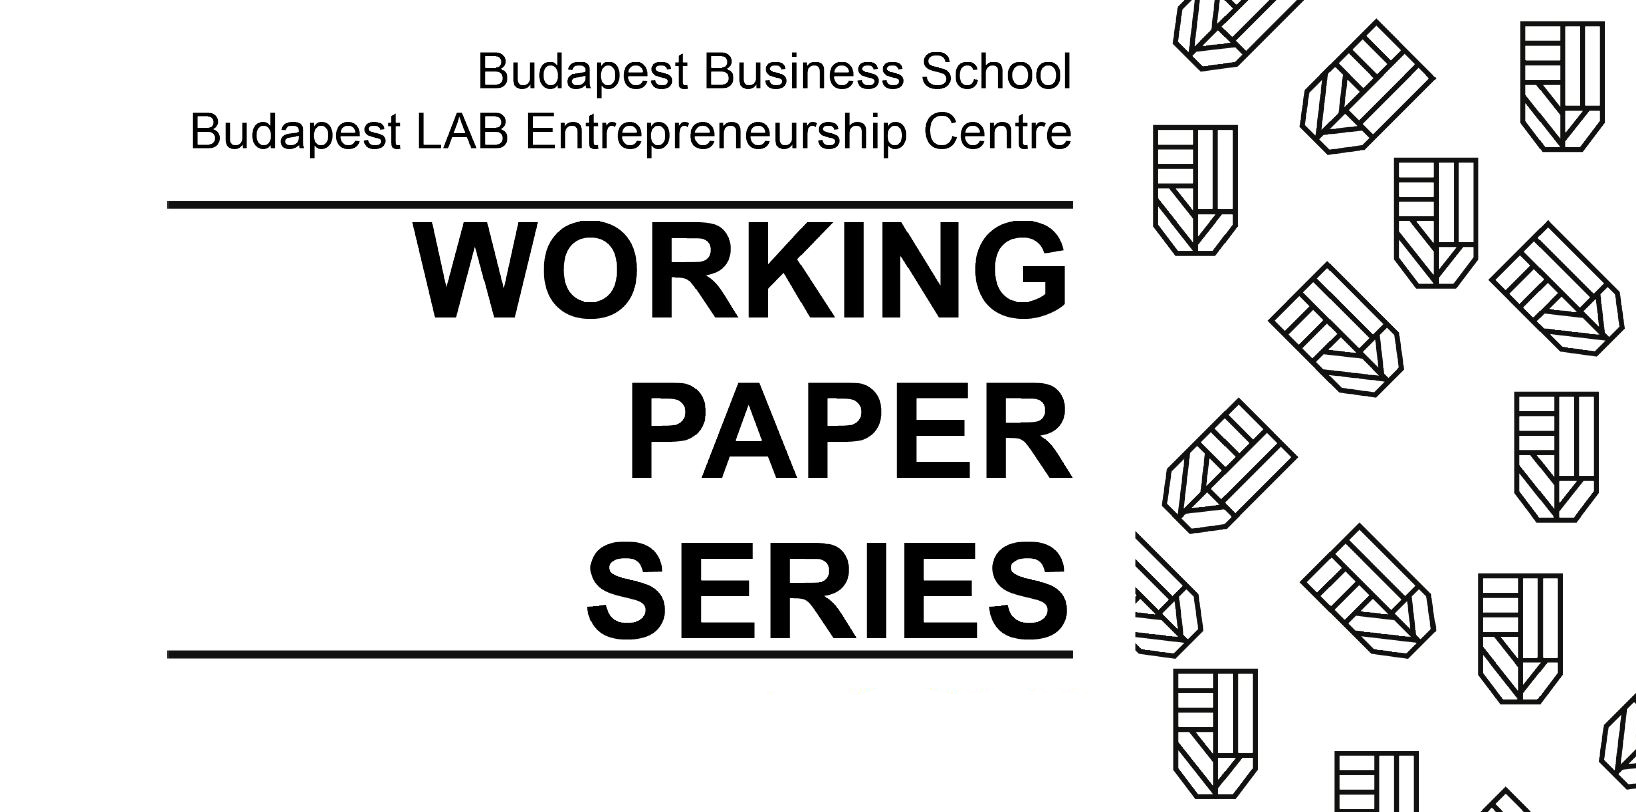 Budapest LAB Working Paper Series